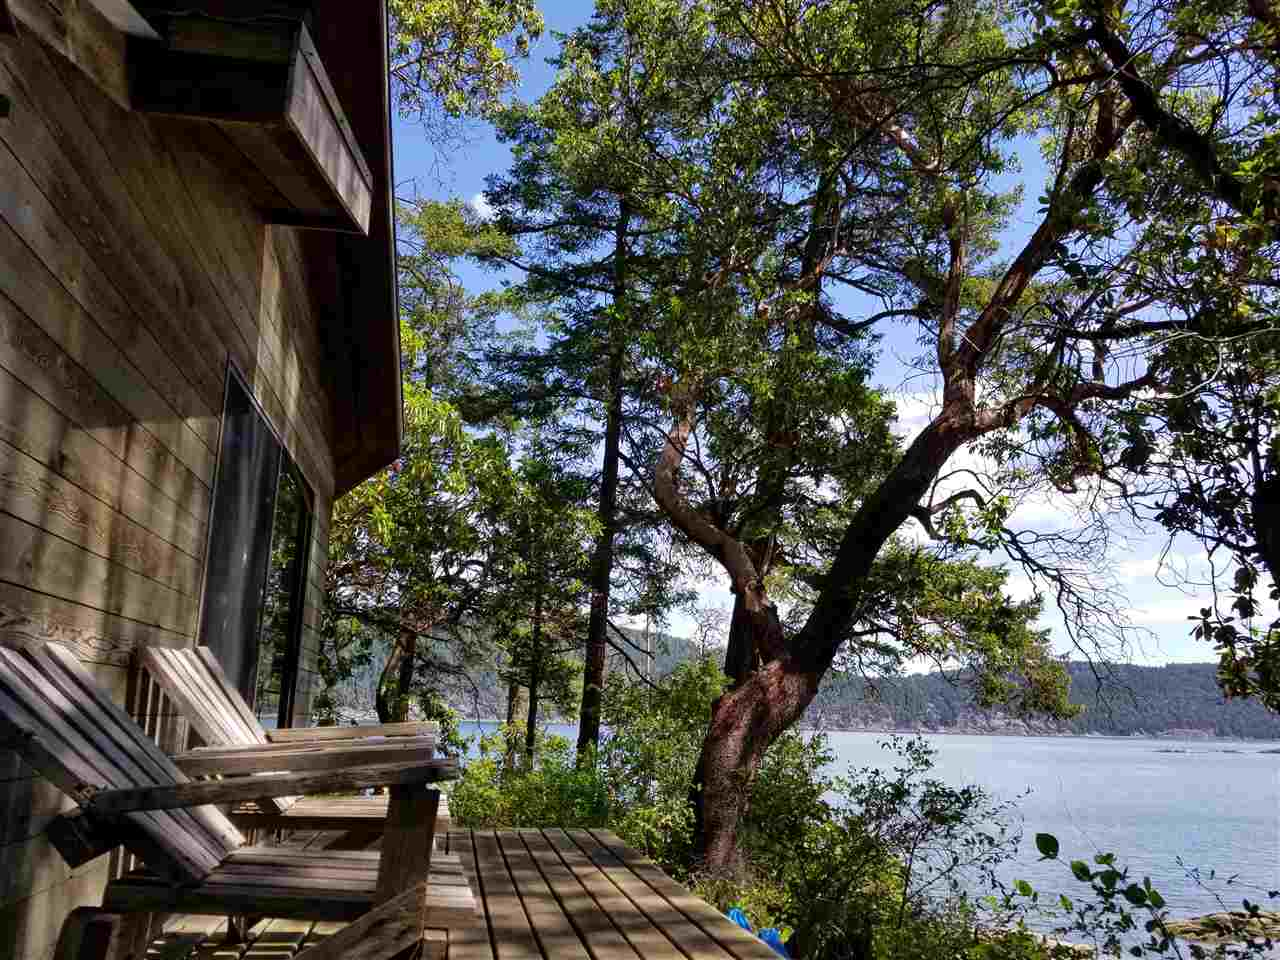 Fine waterfront point property on 0.4 forested acre on Wise Island. Fully useable land. Rare low bank waterfront cabin with a sandy beach in a shallow bay that dries out at low tide. Exquisite panoramic views of Trincomali Channel across to Galiano and eastwards towards Montague Provincial Park with its wonderful shell swimming beaches. Connected to a community water system. Wise Island is located between Galiano and Salt Spring Island and is easily accessible from protected Montague Harbour on Galiano or from Ganges on Salt Spring Island. A wonderful property for families with kids. Go for a swim, circumnavigate Wise Island by kayak or watch the setting summer sun up Trincomali Channel. Rustic cabin is well appointed on the land!